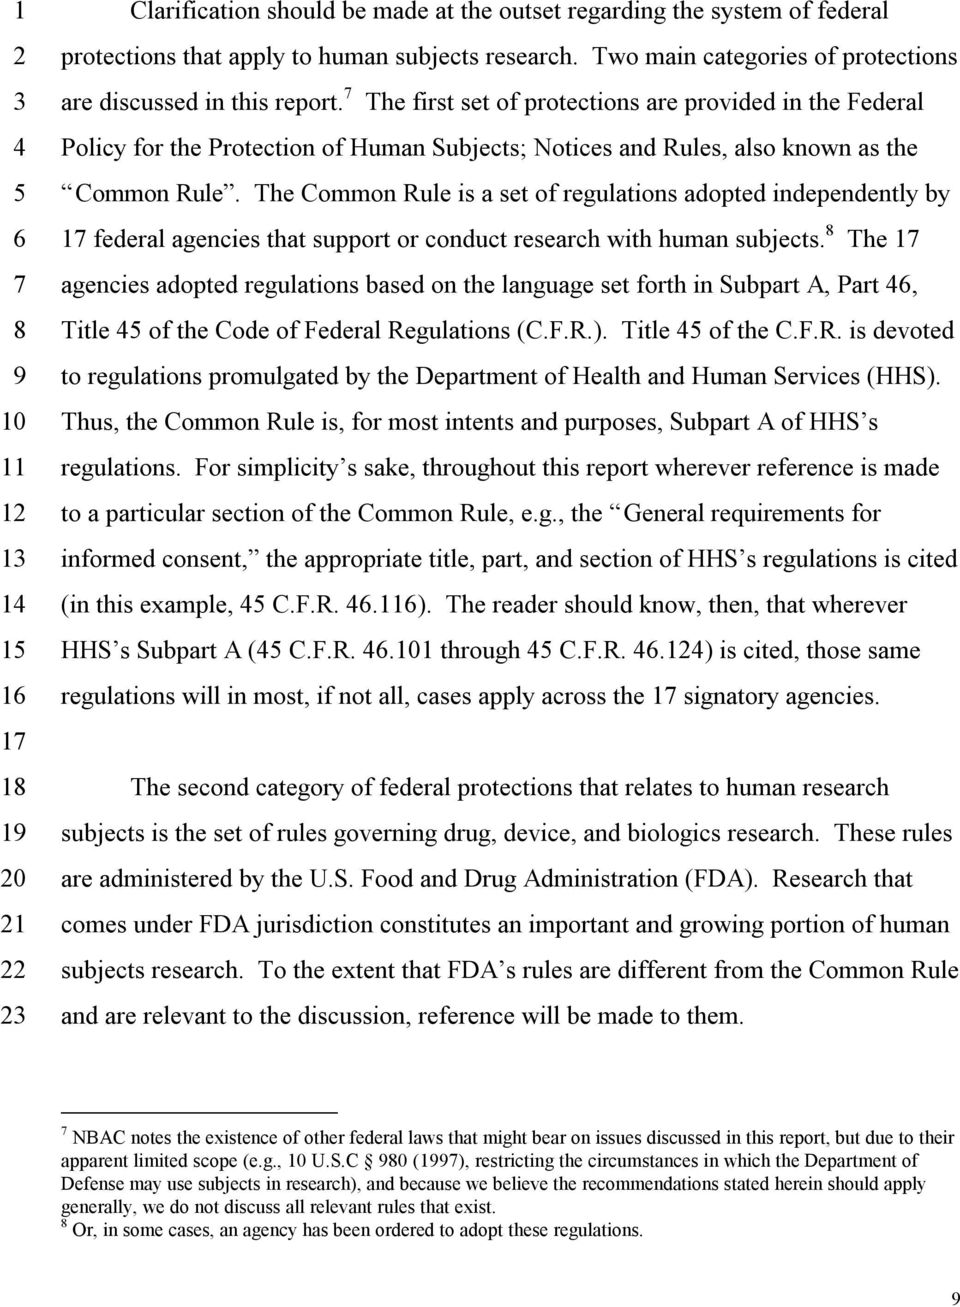 The first set of protections are provided in the Federal Policy for the Protection of Human Subjects; Notices and Rules, also known as the Common Rule.